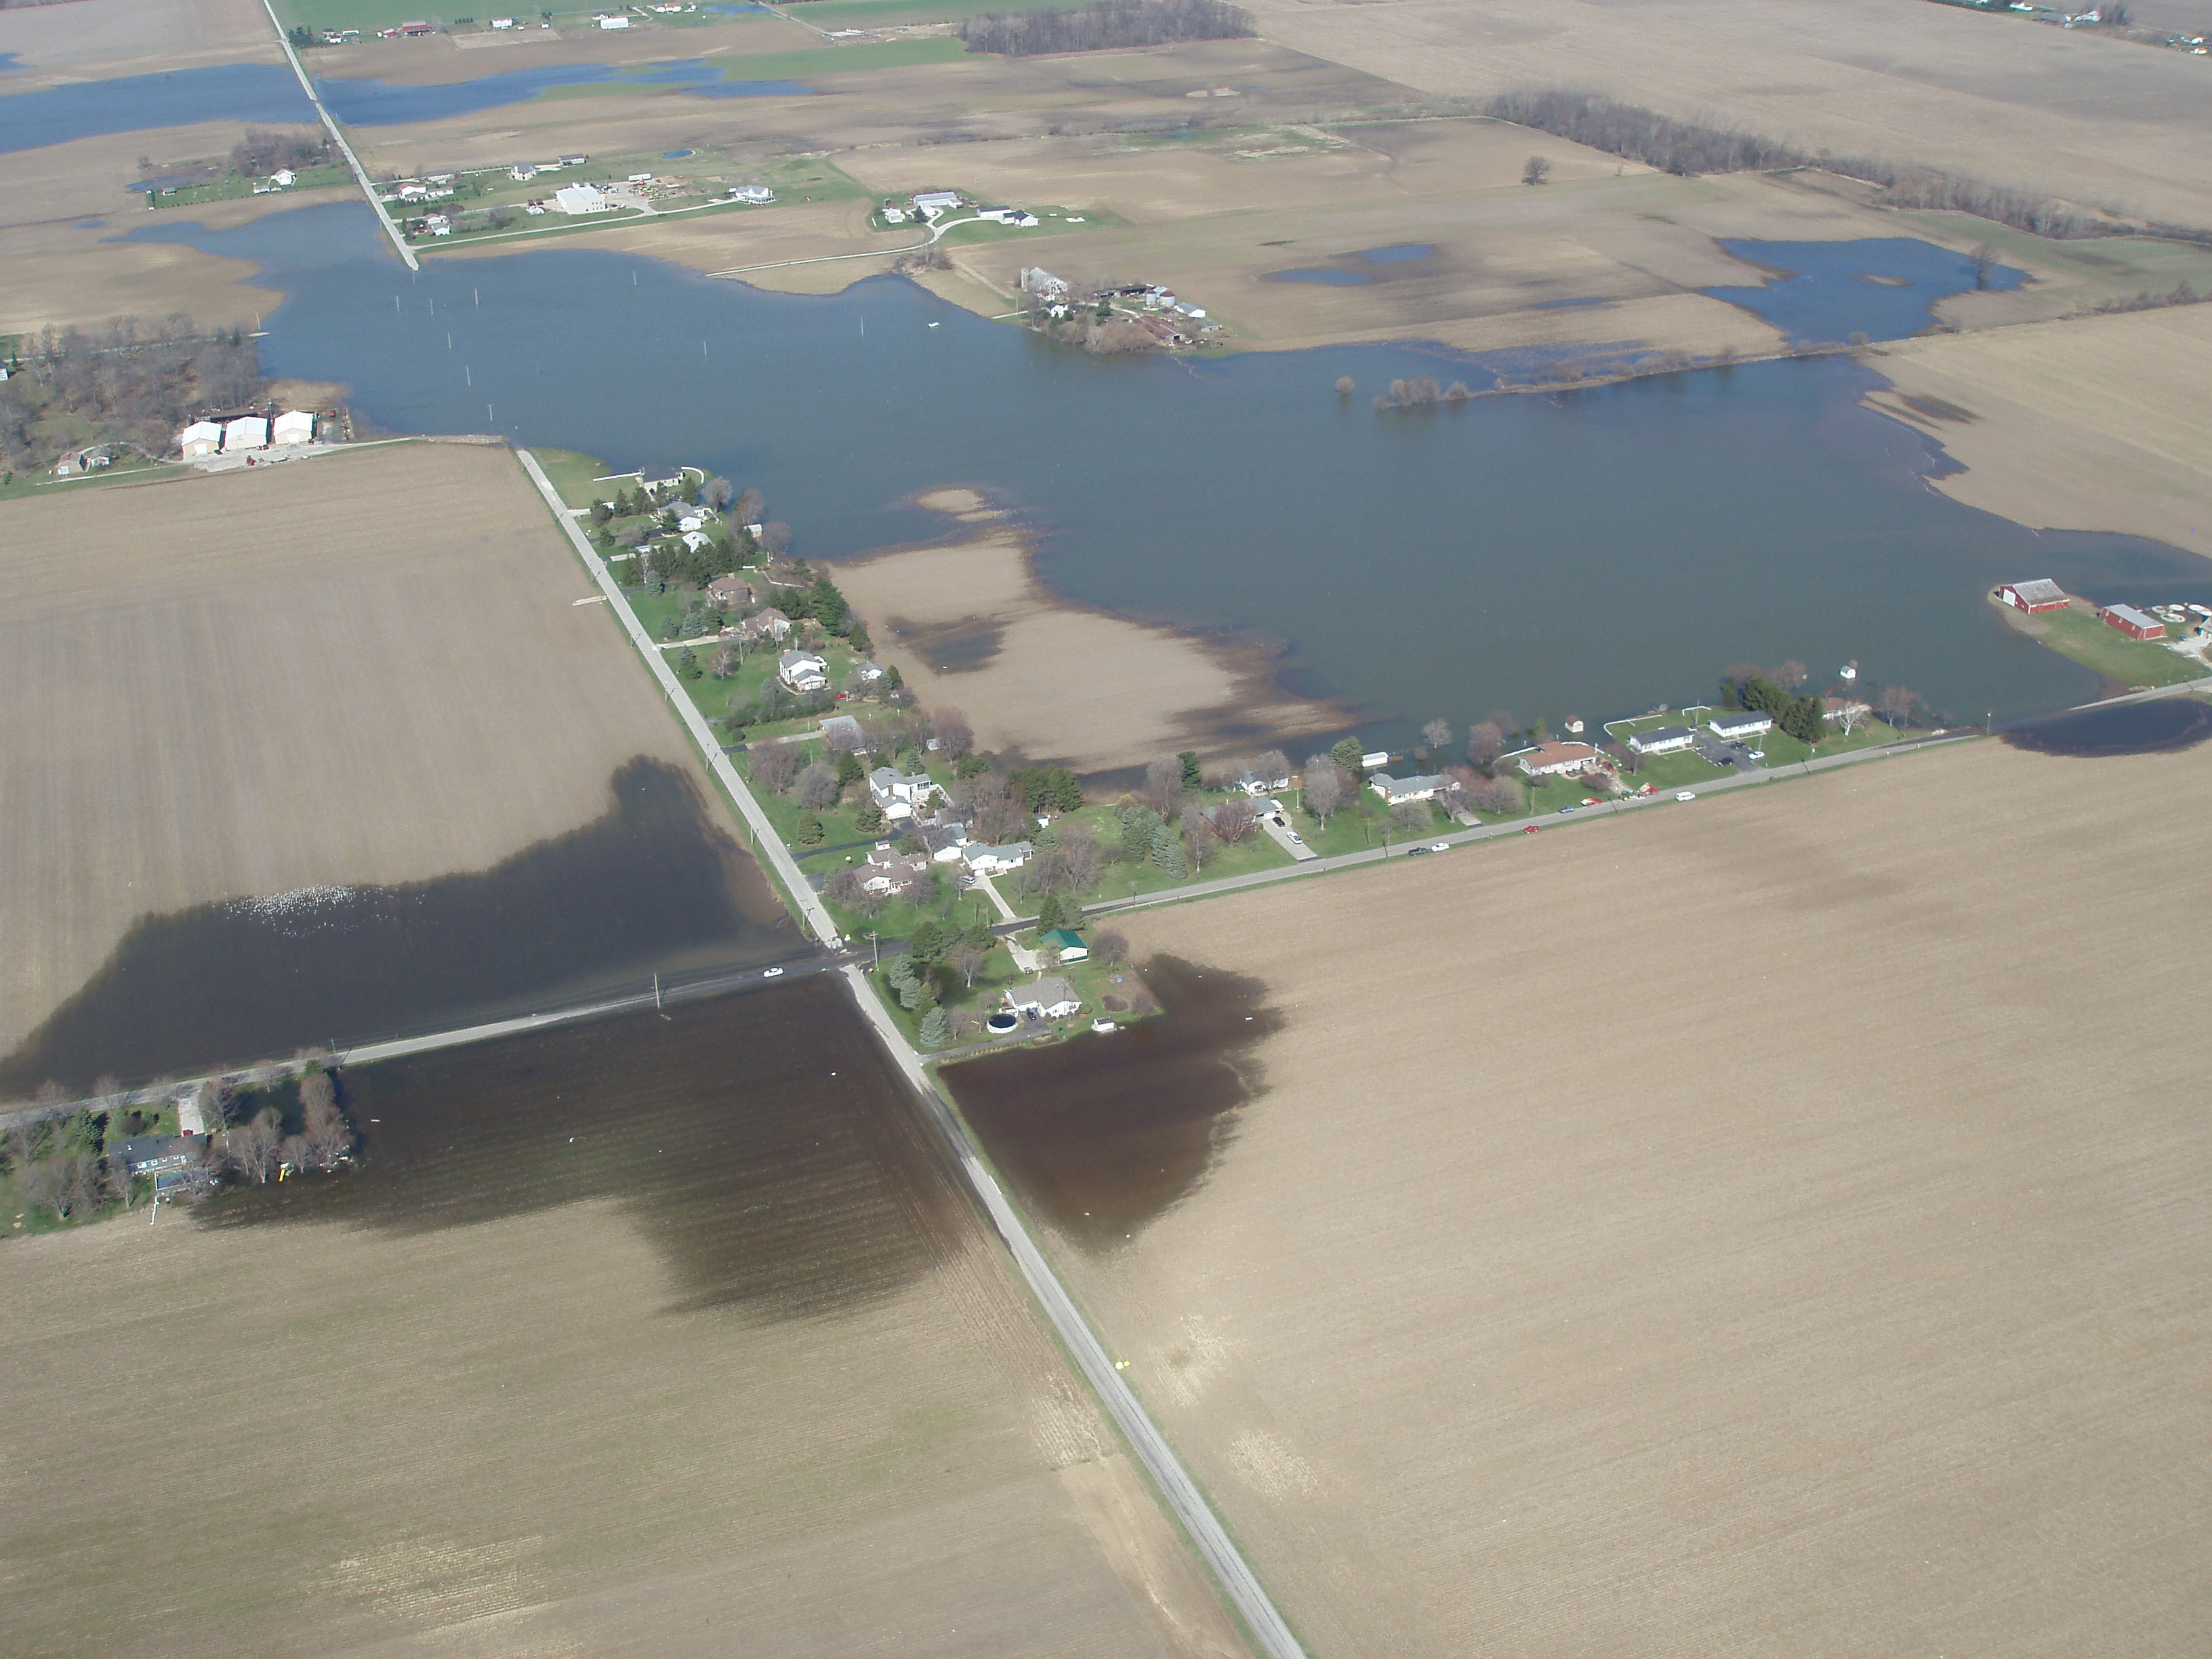 Aerial photograph showing extensive karst flooding caused by a lack of surface